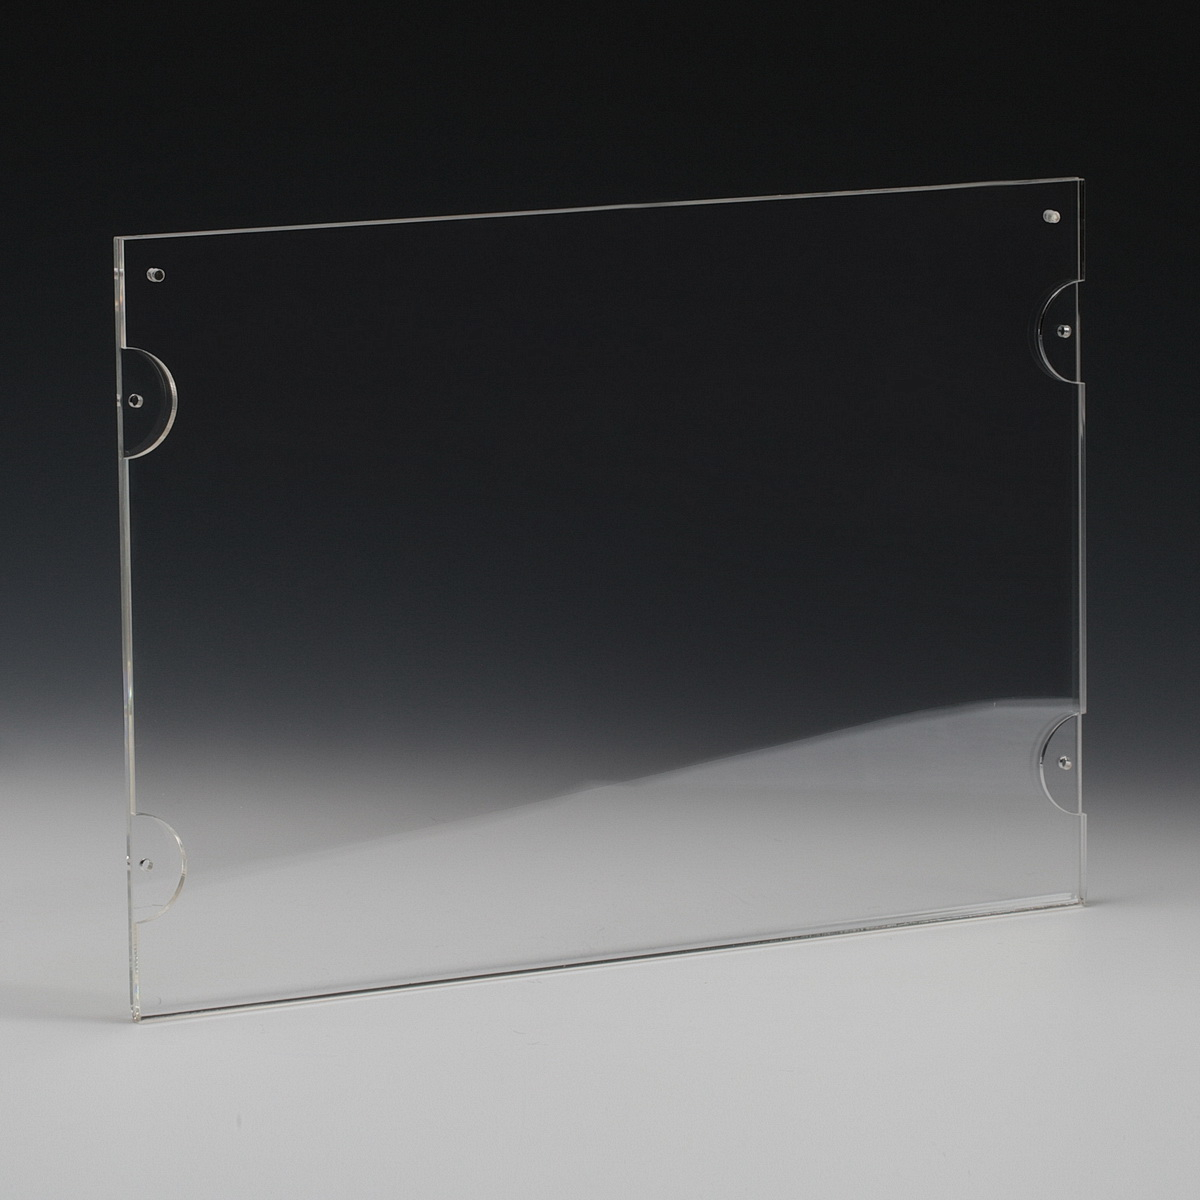 Clear Acrylic Wall Frame with magnets, accommodates 11 x 8.5'' media  (sold Without Hardware)